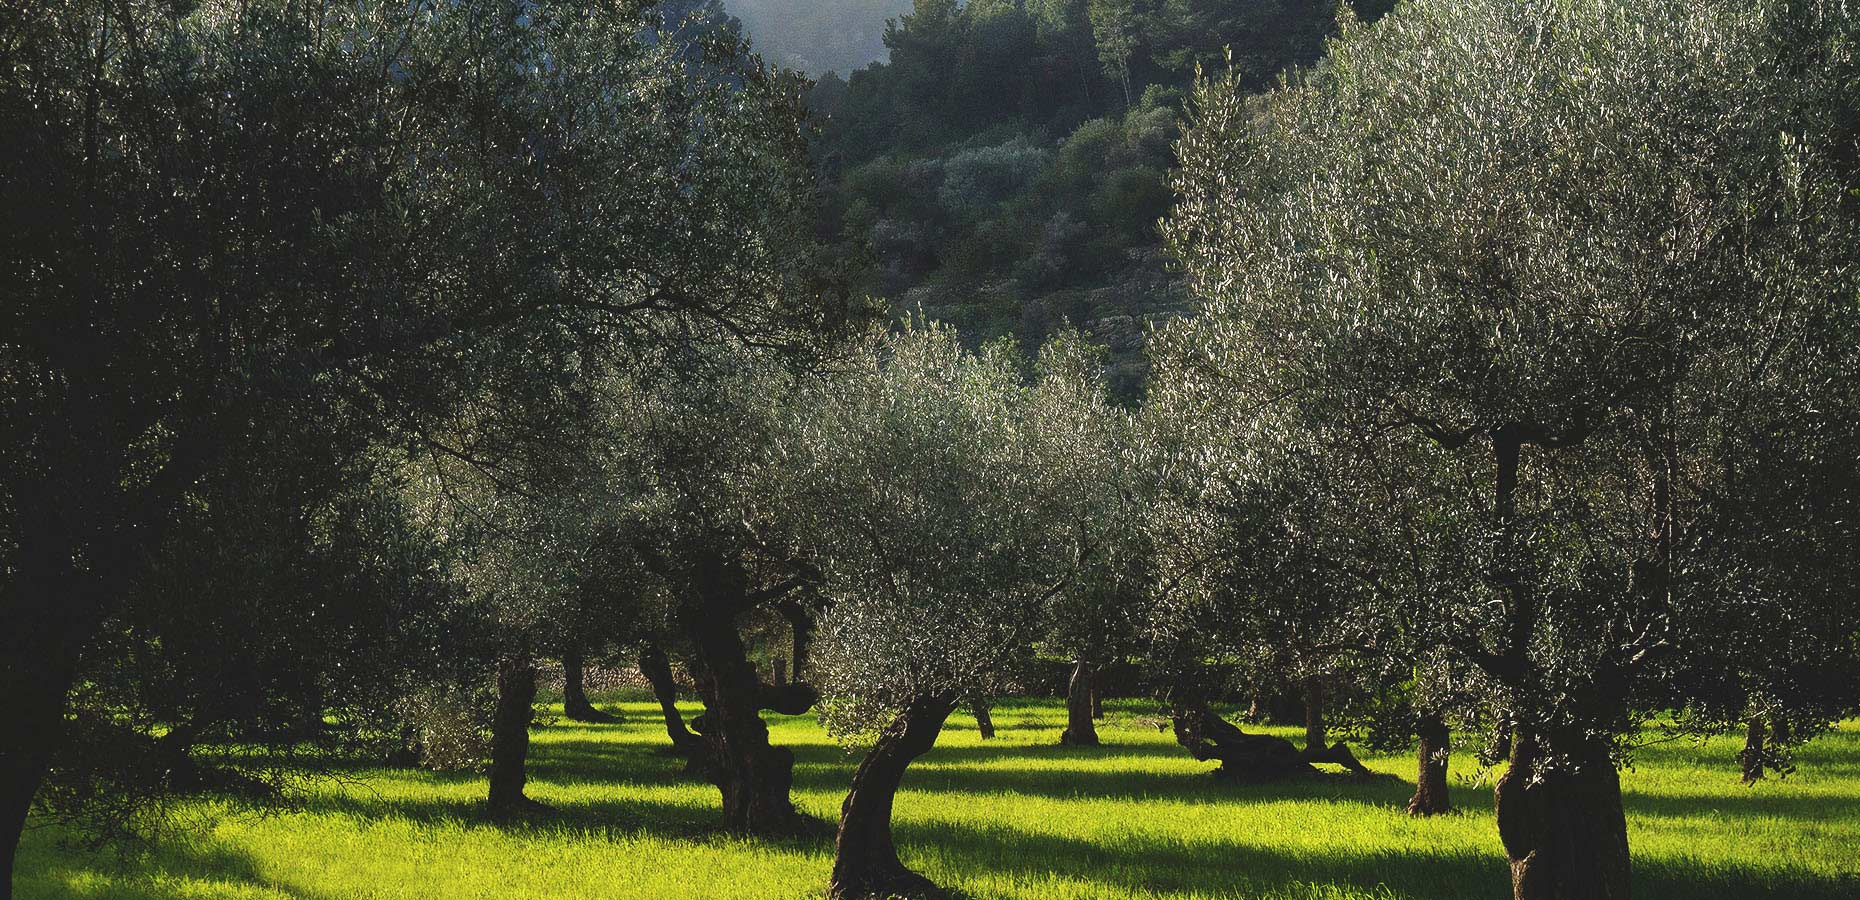 Image of Valldemossa Moorish town with orchards of olives and lemons